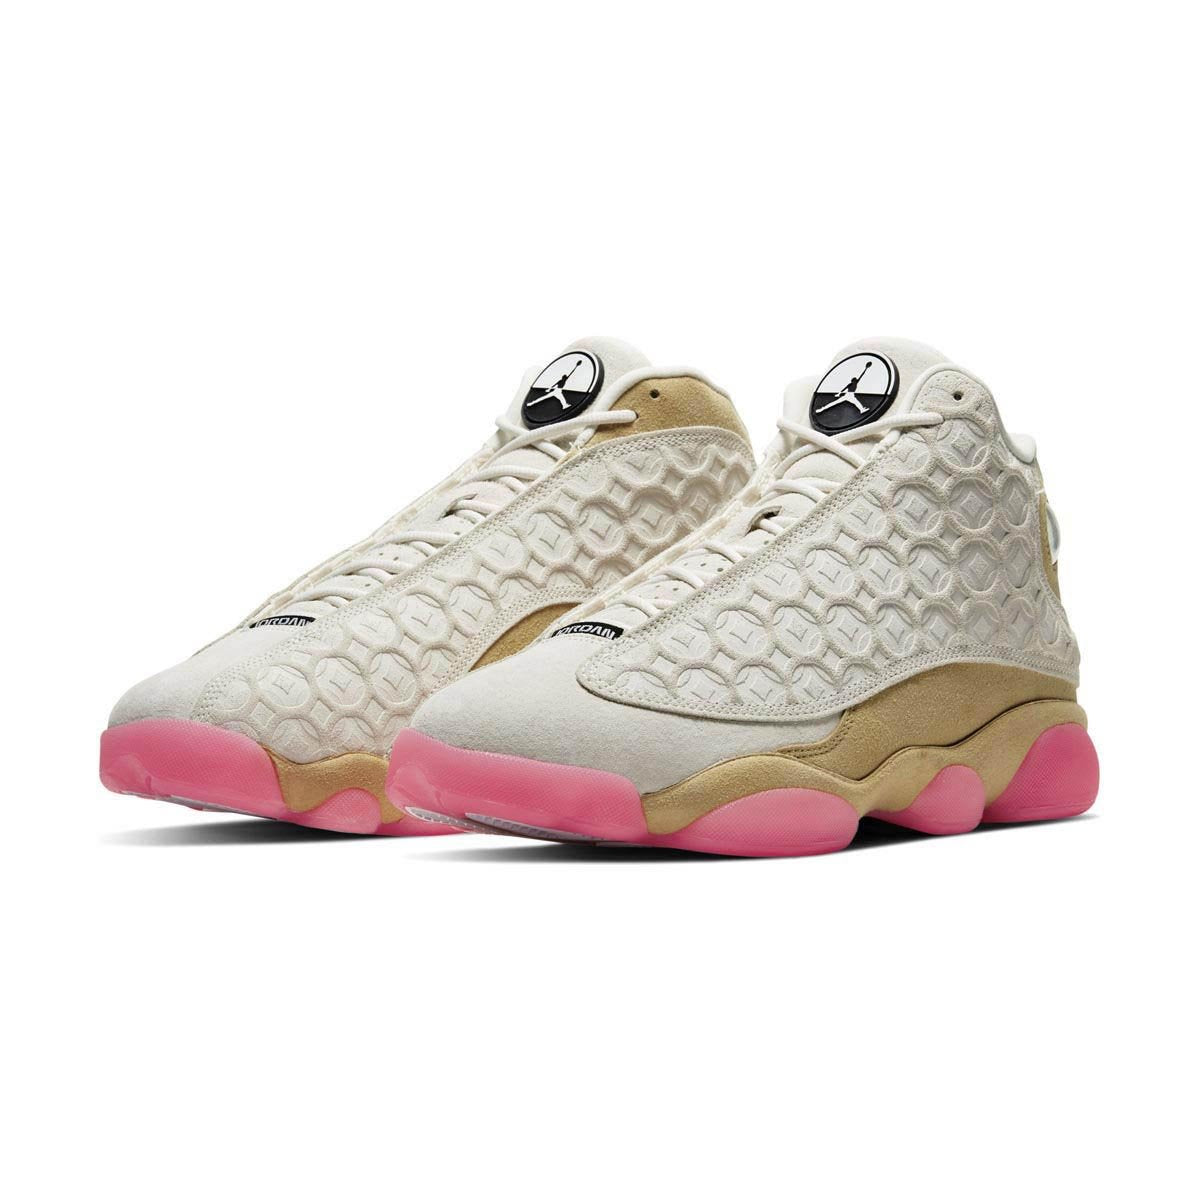 Men's Air Jordan 13 Retro Chinese New Year